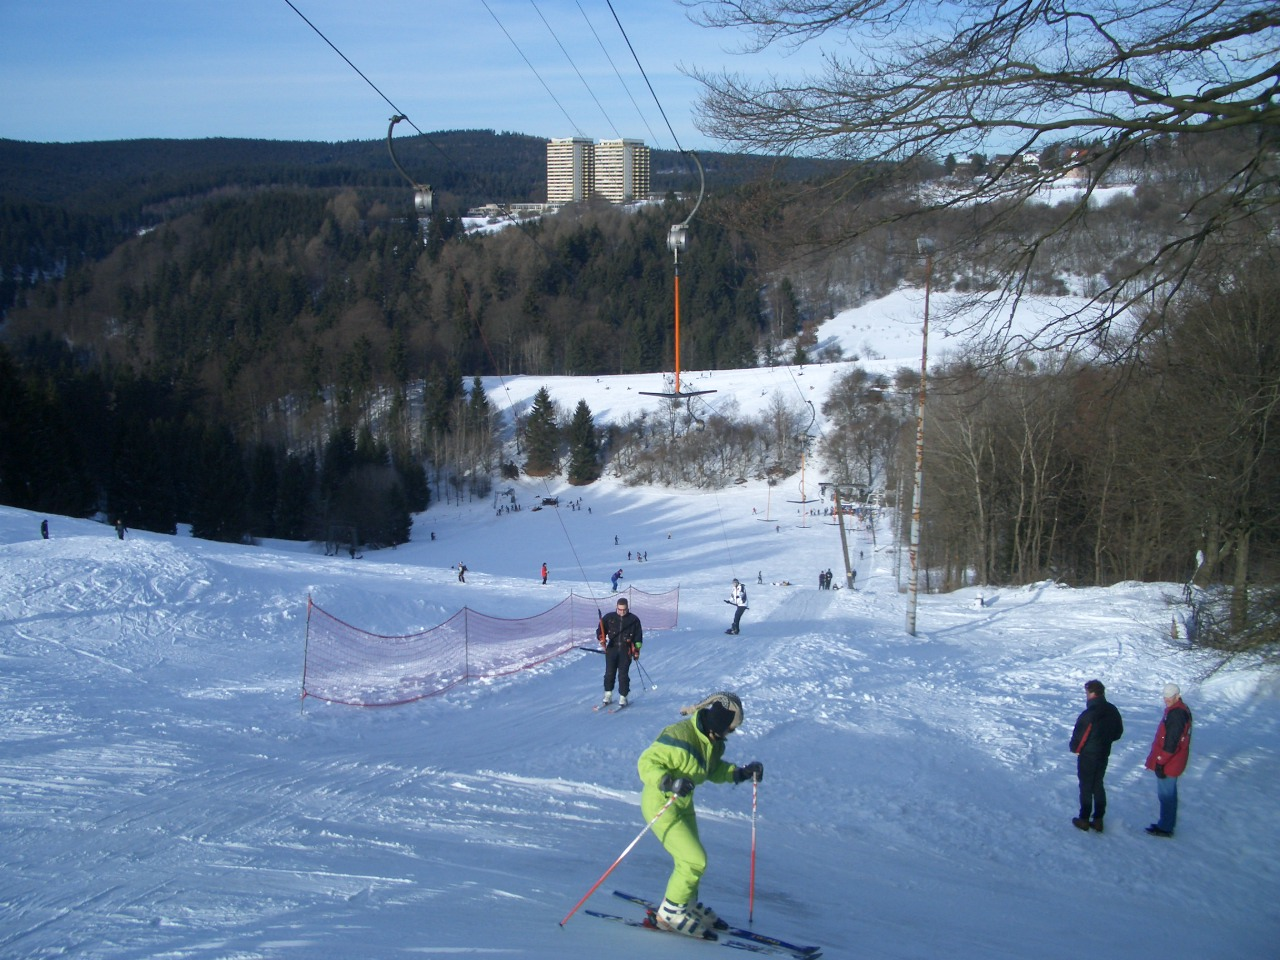 hohegeiss-skicentrum3(c)thomas-rust.JPG